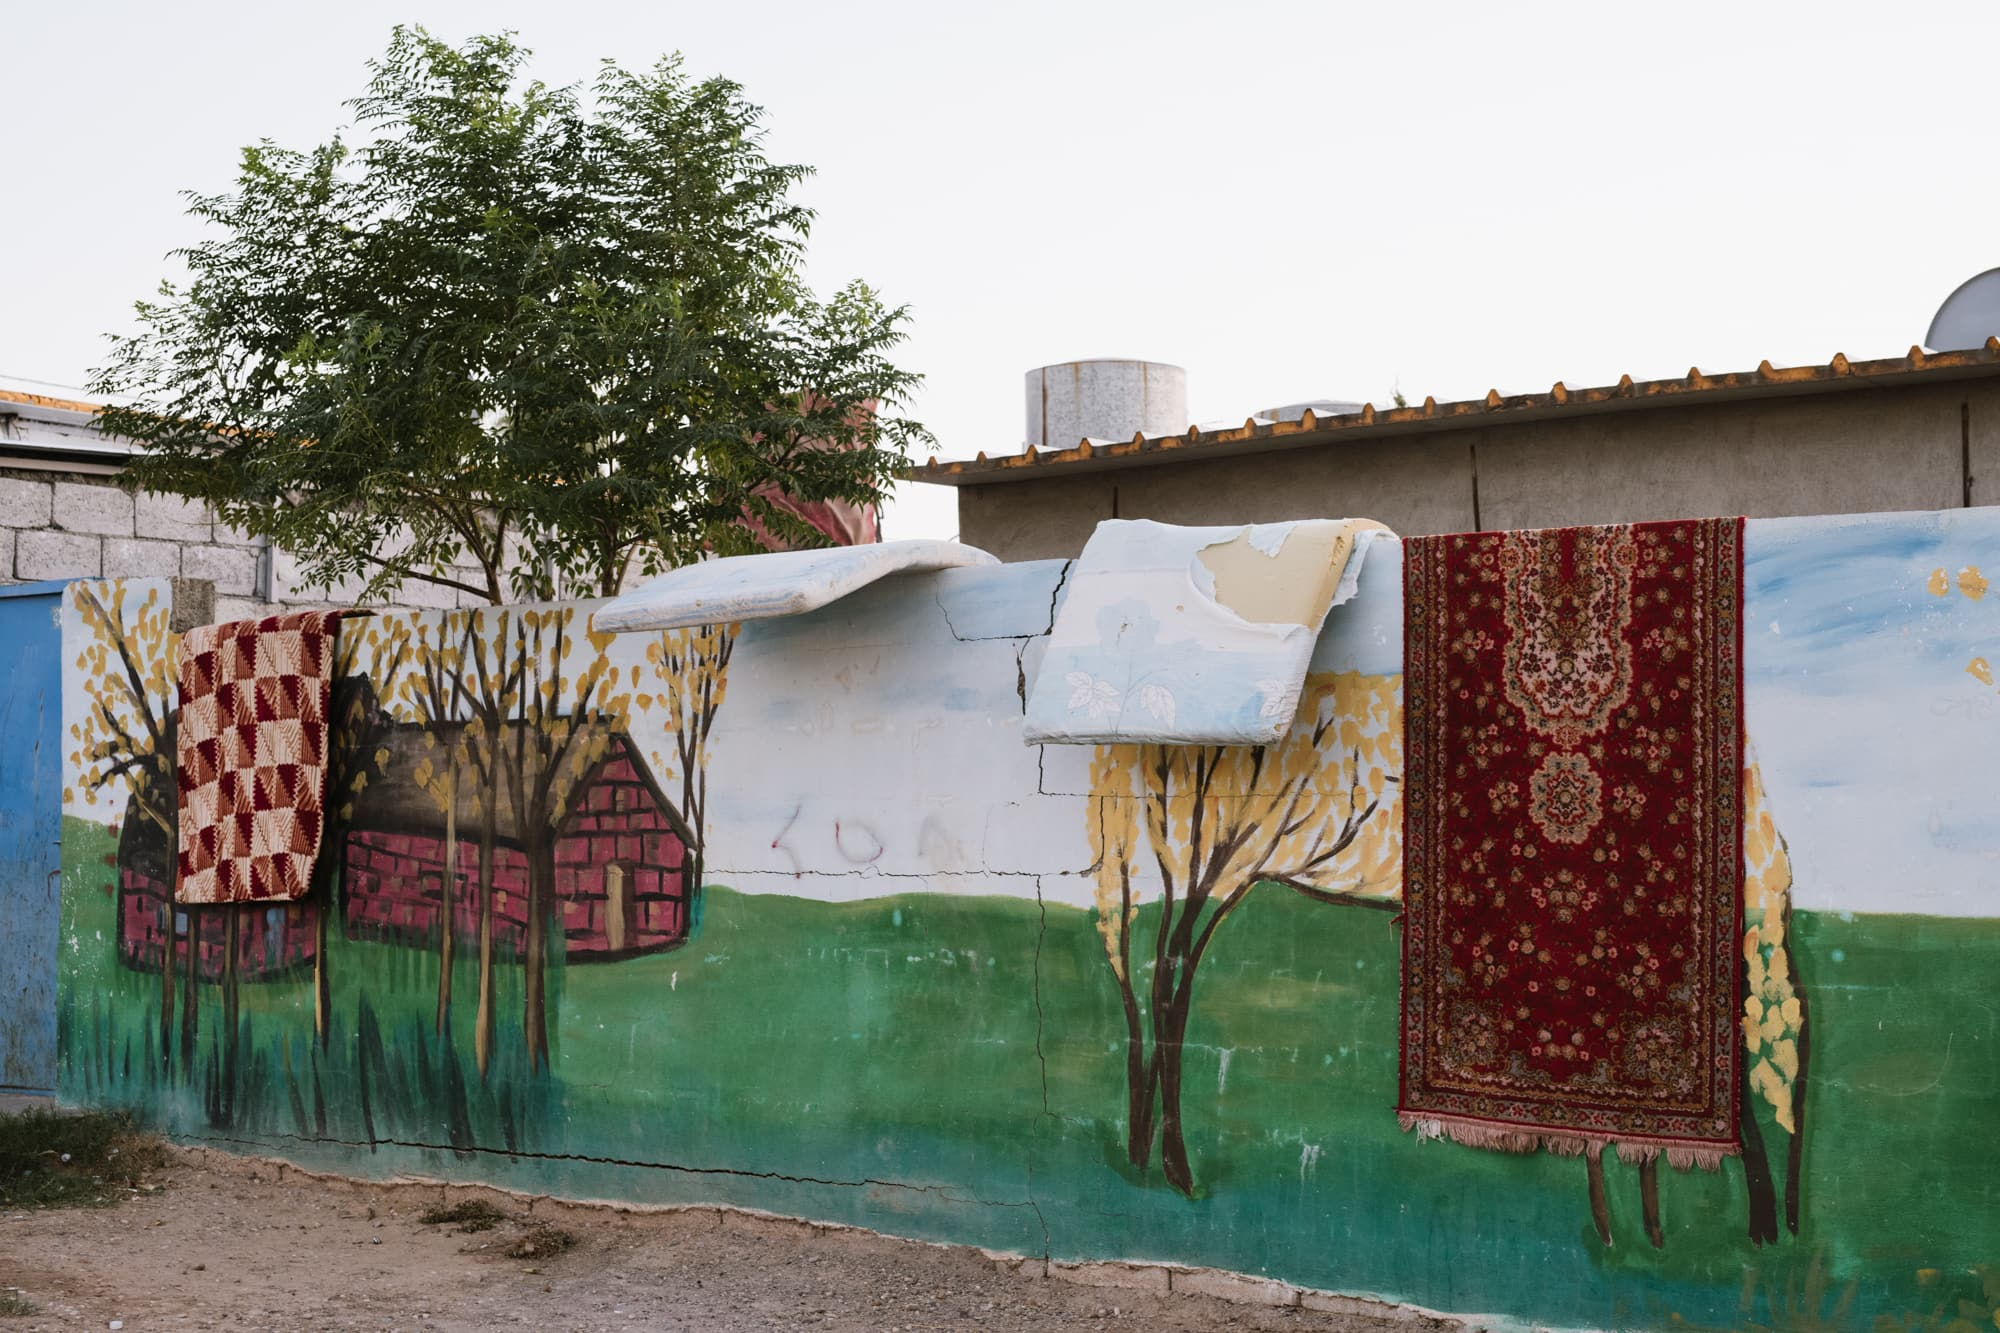 Decorated walls and carpets at Gawilan refugee camp, Iraq, on Sept 2nd, 2019.